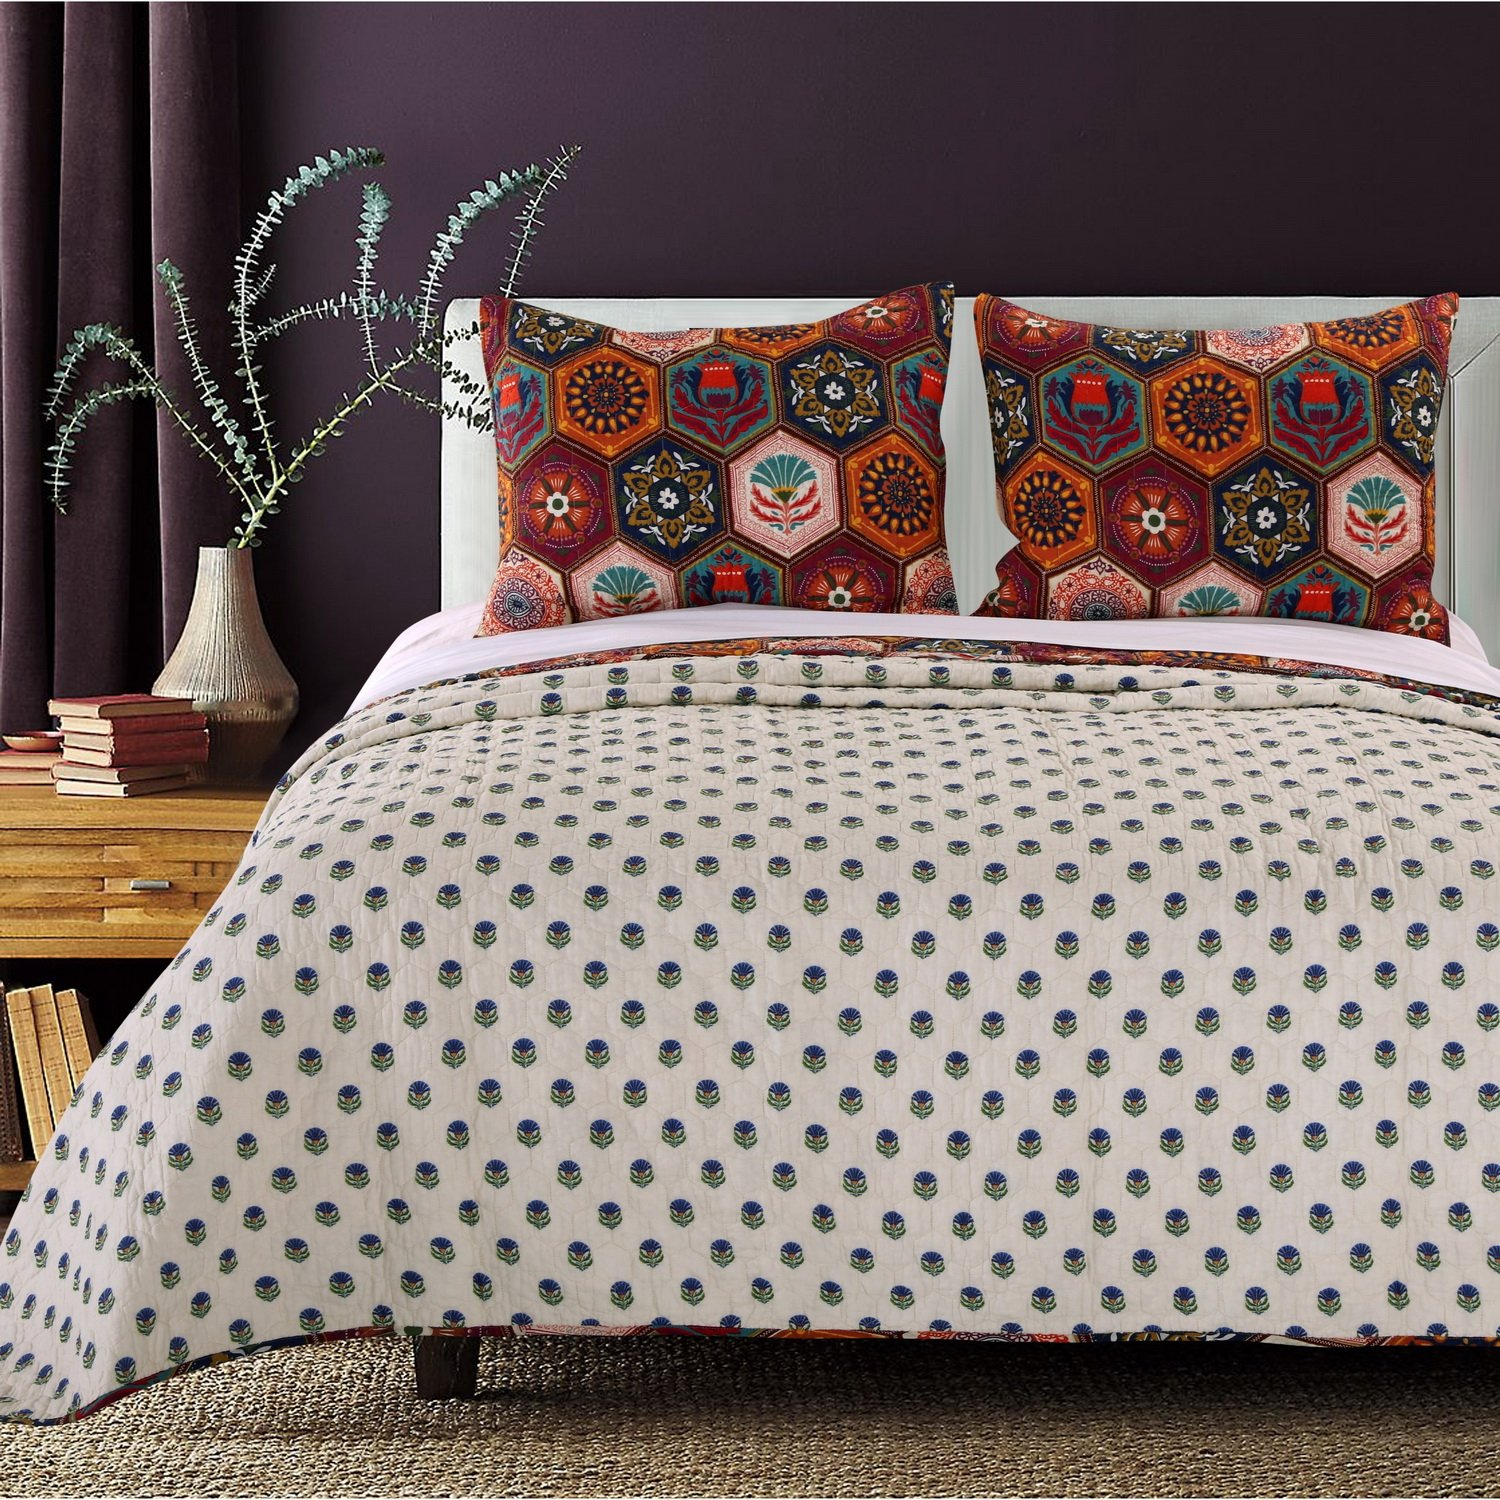 Boho Moroccan Quilt Set with Shams Geometric Pattern Medallion Mandala Earth Tones Orange Brown 100 Cotton Luxury Reversible 2 Piece Twin Size Print Bedding - Includes Bed Sheet Straps by Finely Stitched (Image #3)